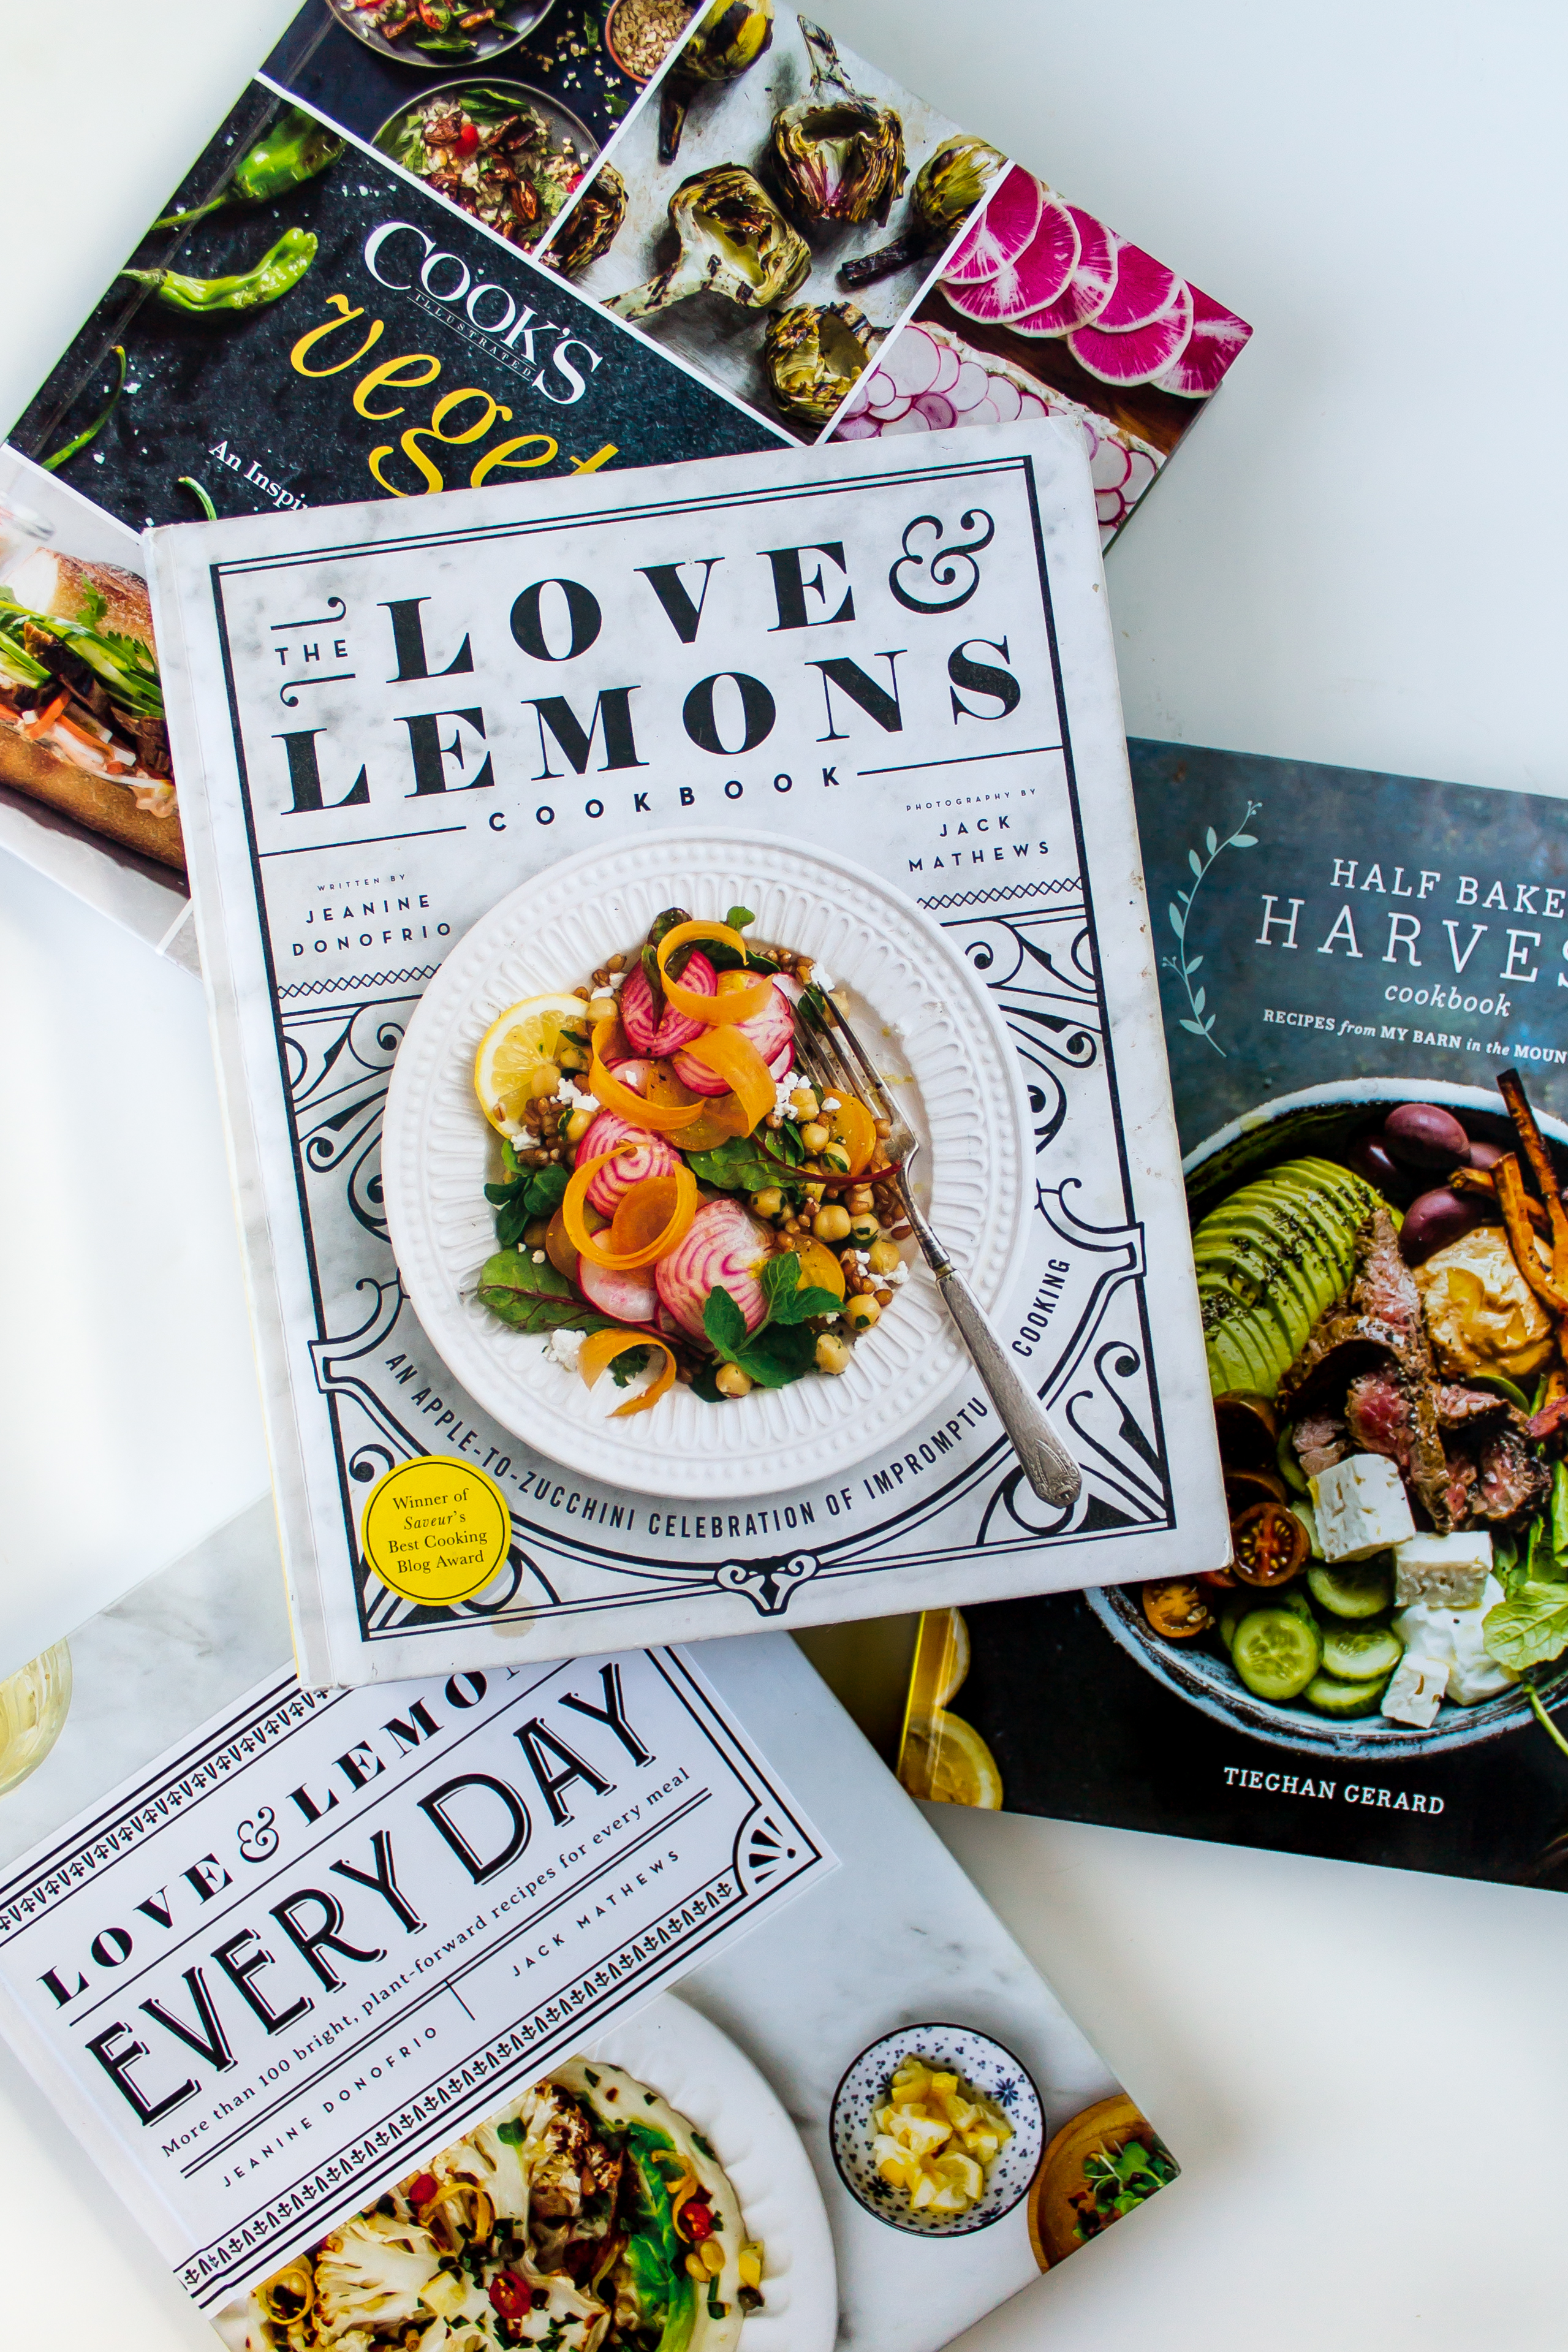 the 5 cookbooks that I'm loving this summer, and where I have been getting most of our dinner recipes. They are all vegetable heavy and filled with great fresh recipes to make all season long. | Pass the Cookies | www.passthecookies.com #cookbooks #summer #summercooking